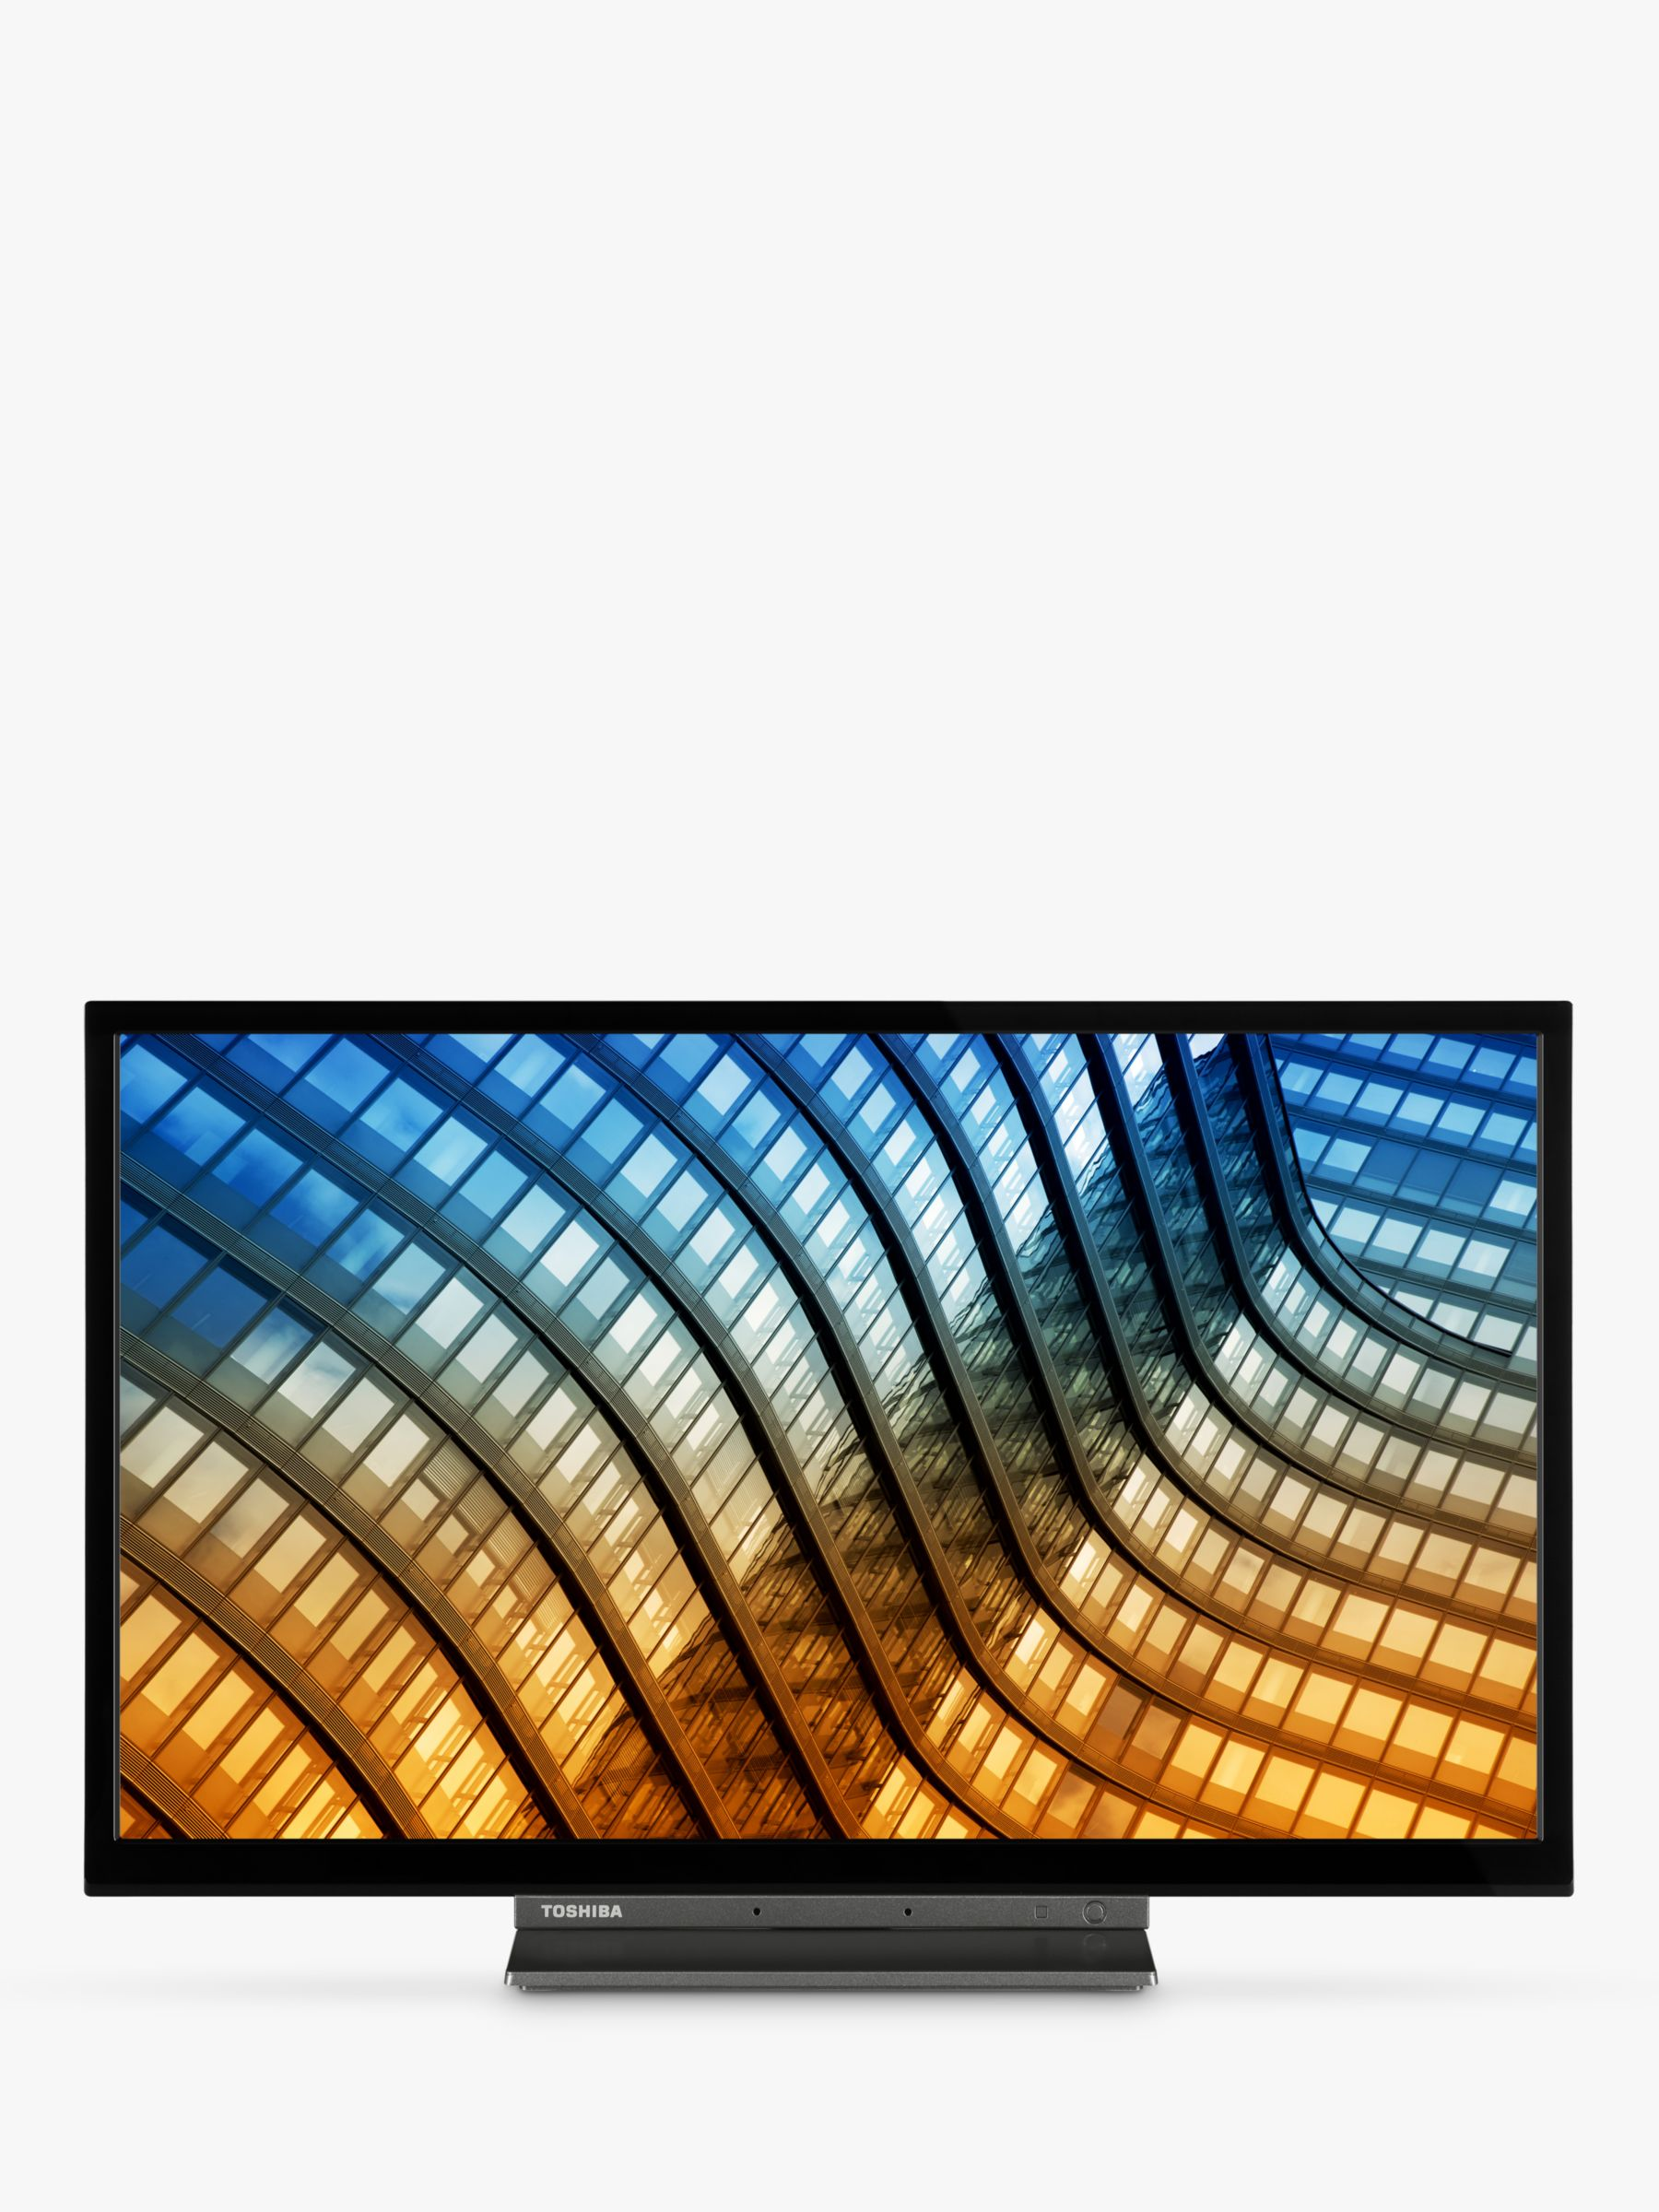 """Toshiba Toshiba 55UL5A63DB (2019) LED 4K Ultra HD Smart TV, 55"""" with Freeview HD & Freeview Play, Black"""